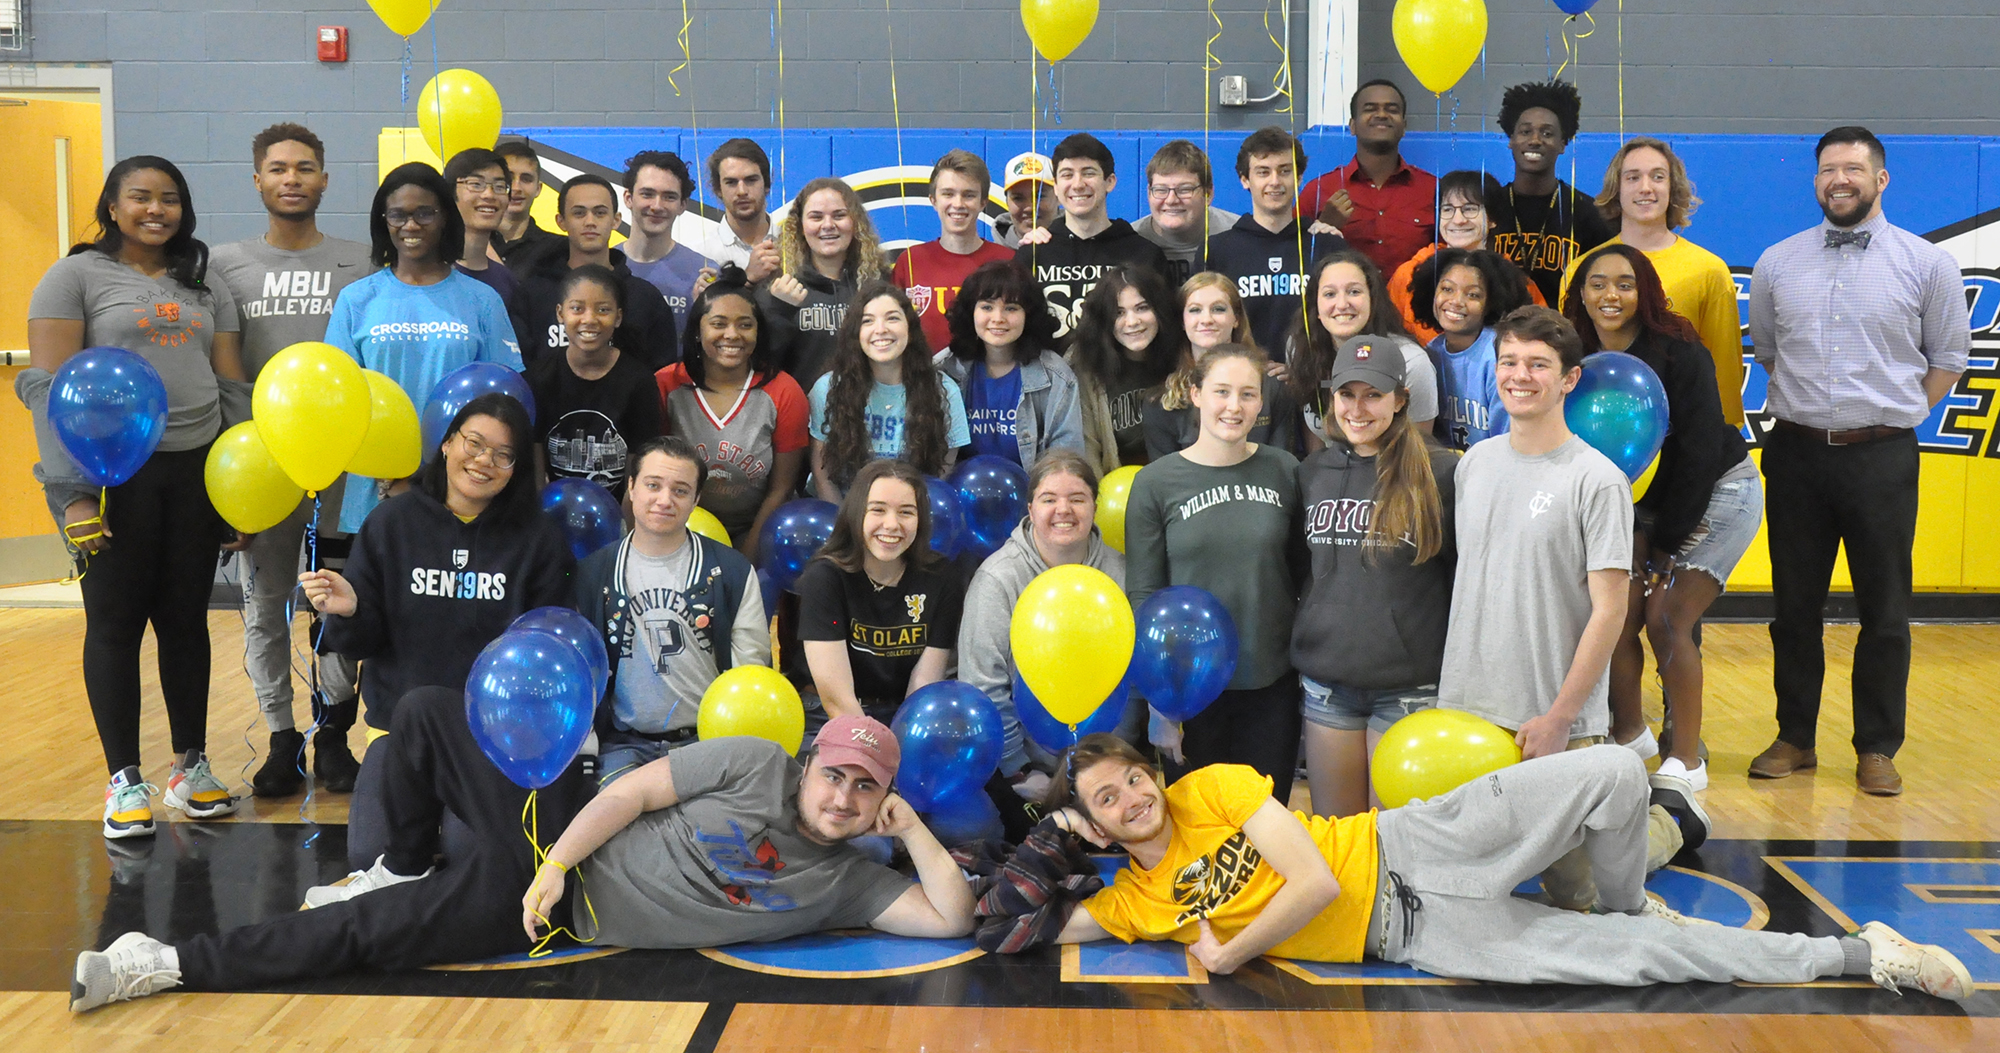 Balloon Day at Crossroads. Seniors wore shirts showing their colleges.